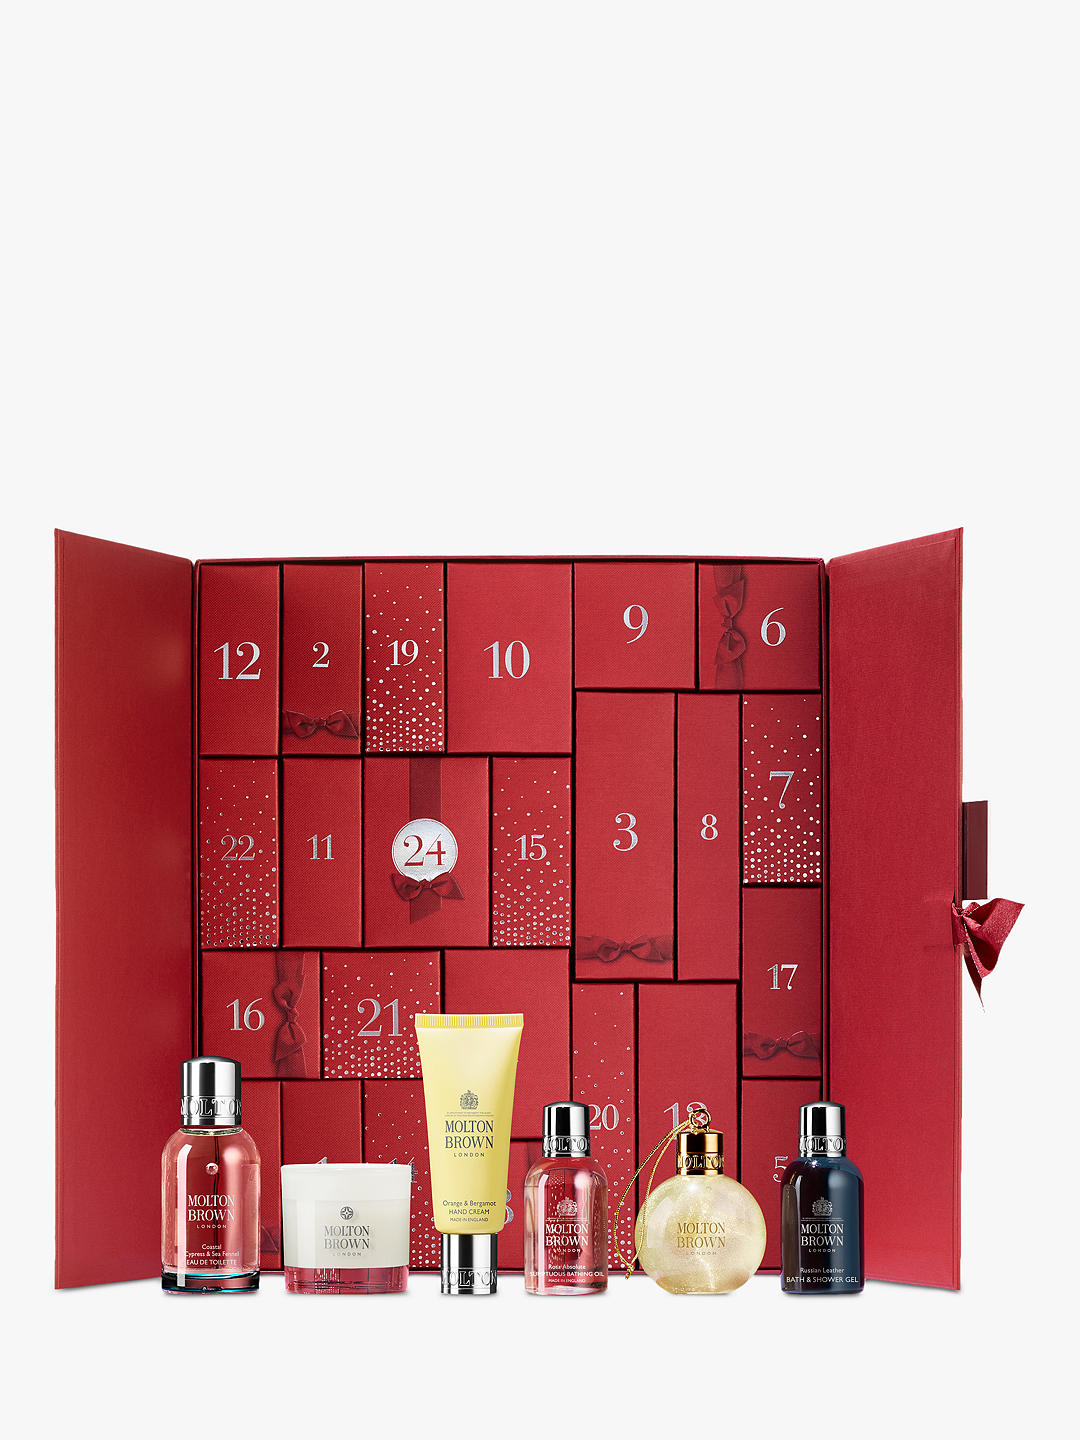 Countdown to Christmas with a luxury beauty calendar